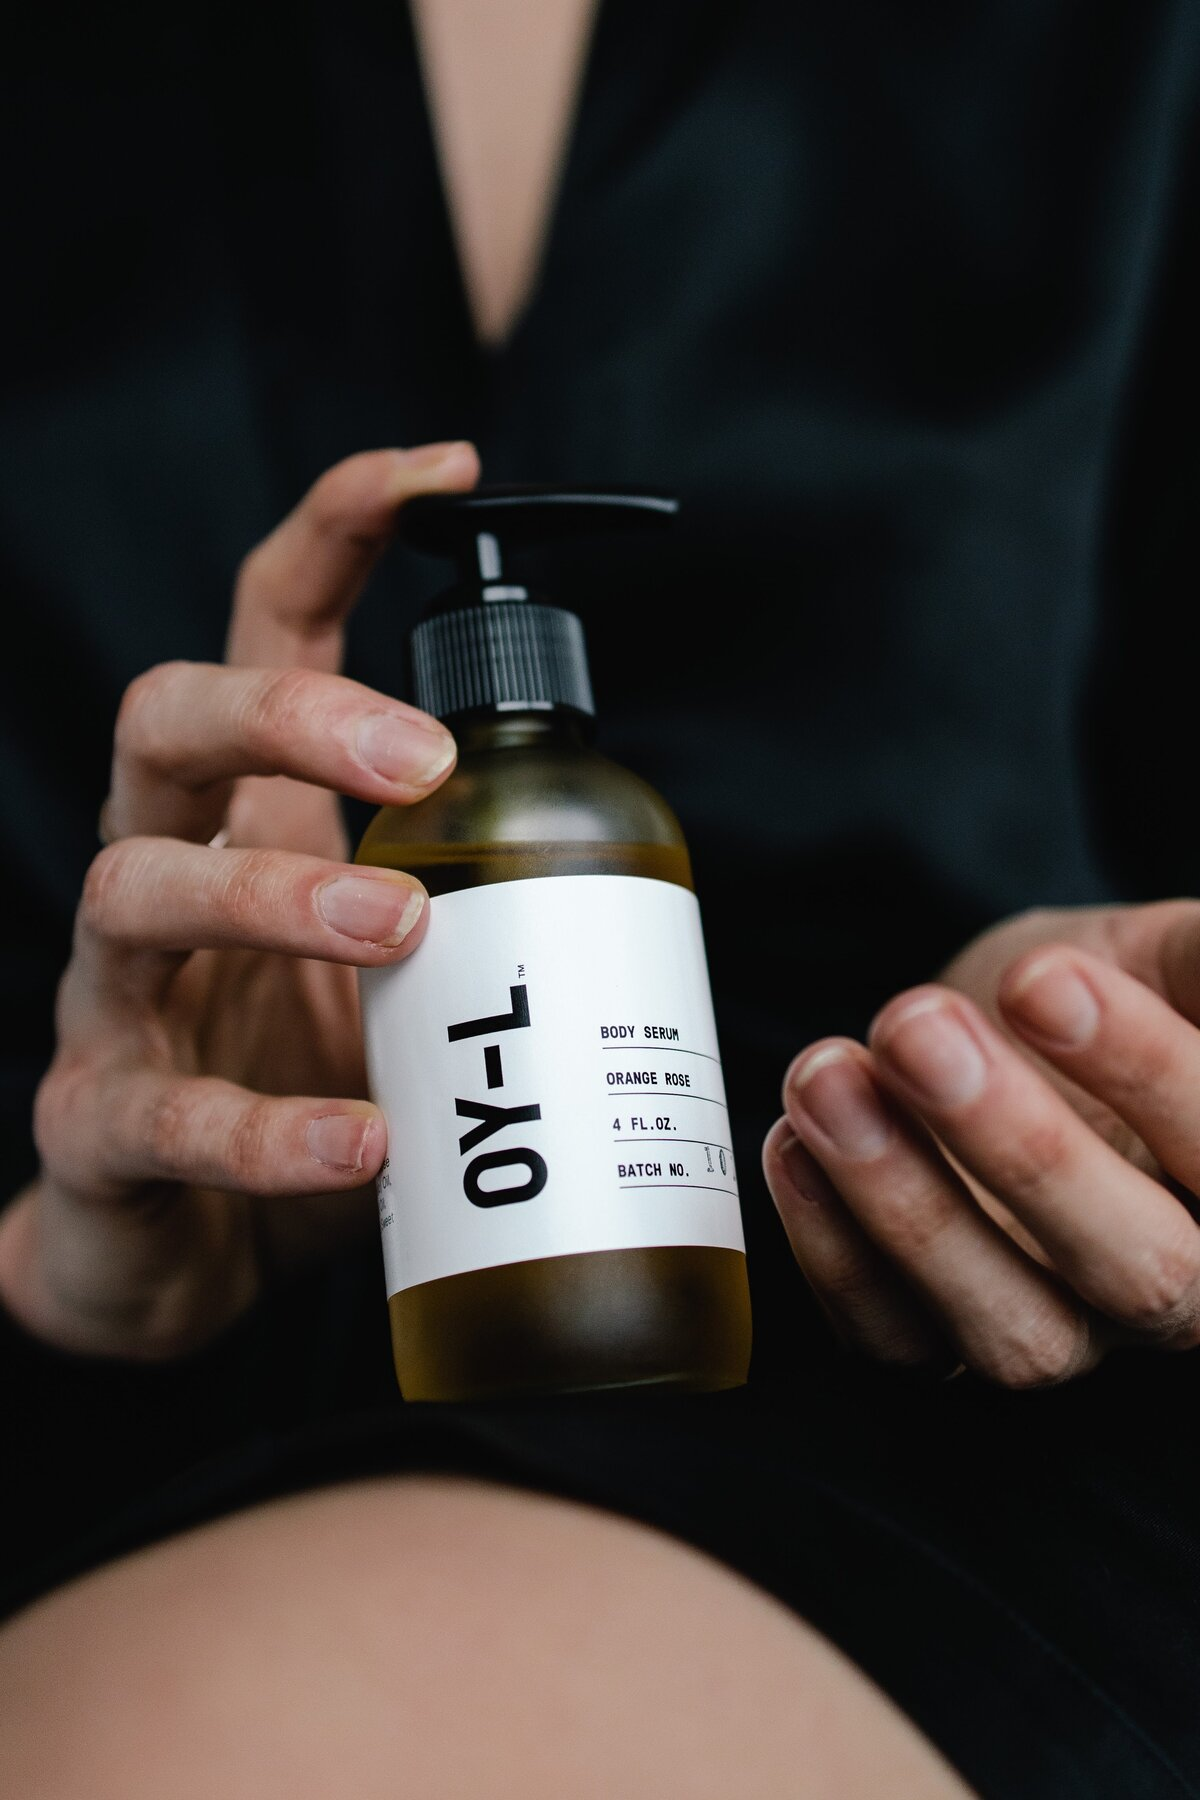 Review of OY-L Clean Body Oil by Alex Perry Photographer and Videographer for Conscious Beauty Brands